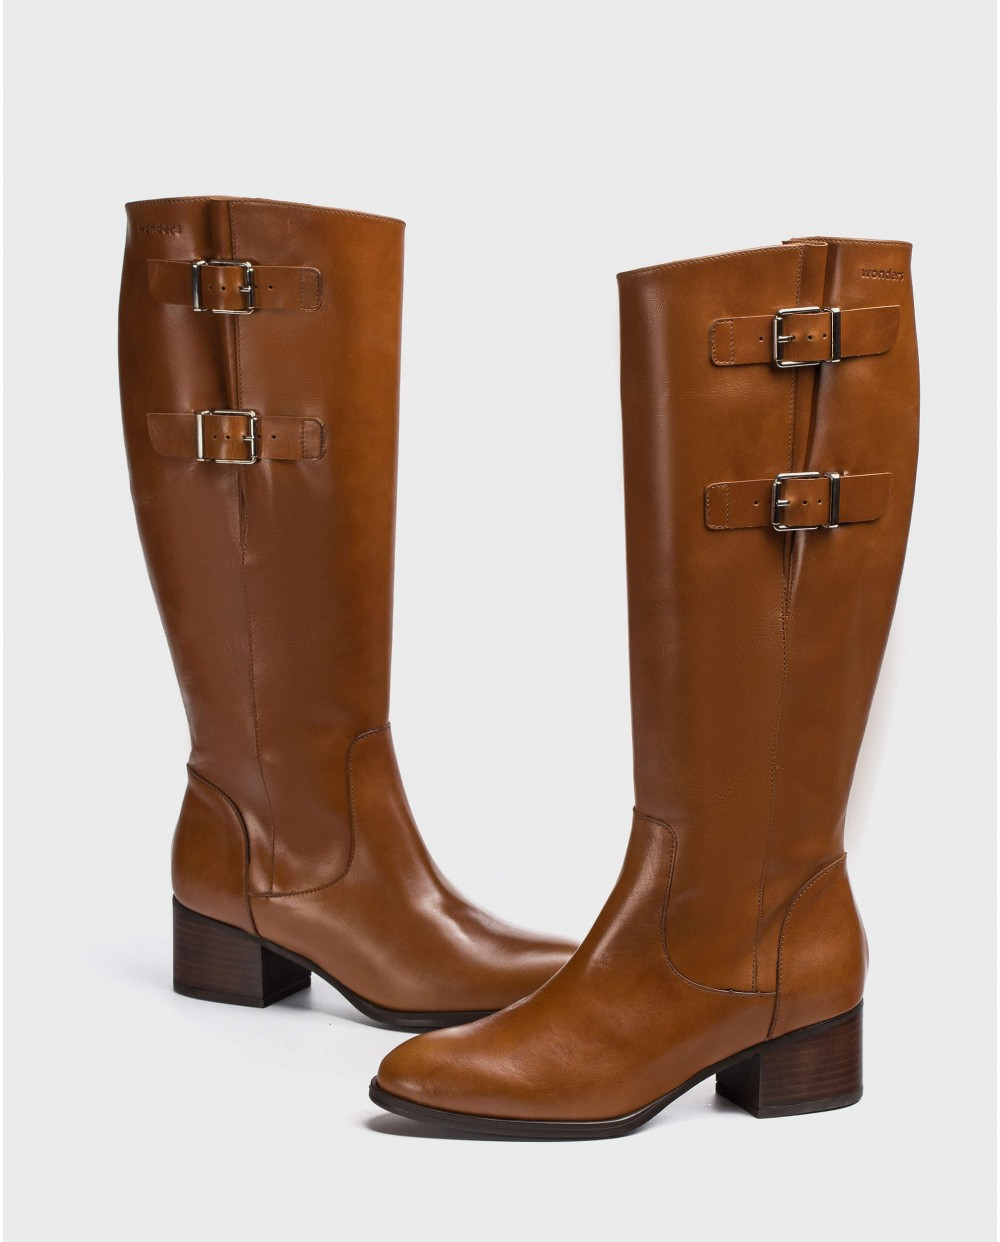 Wonders-Boots-Leather boot with a wider fit